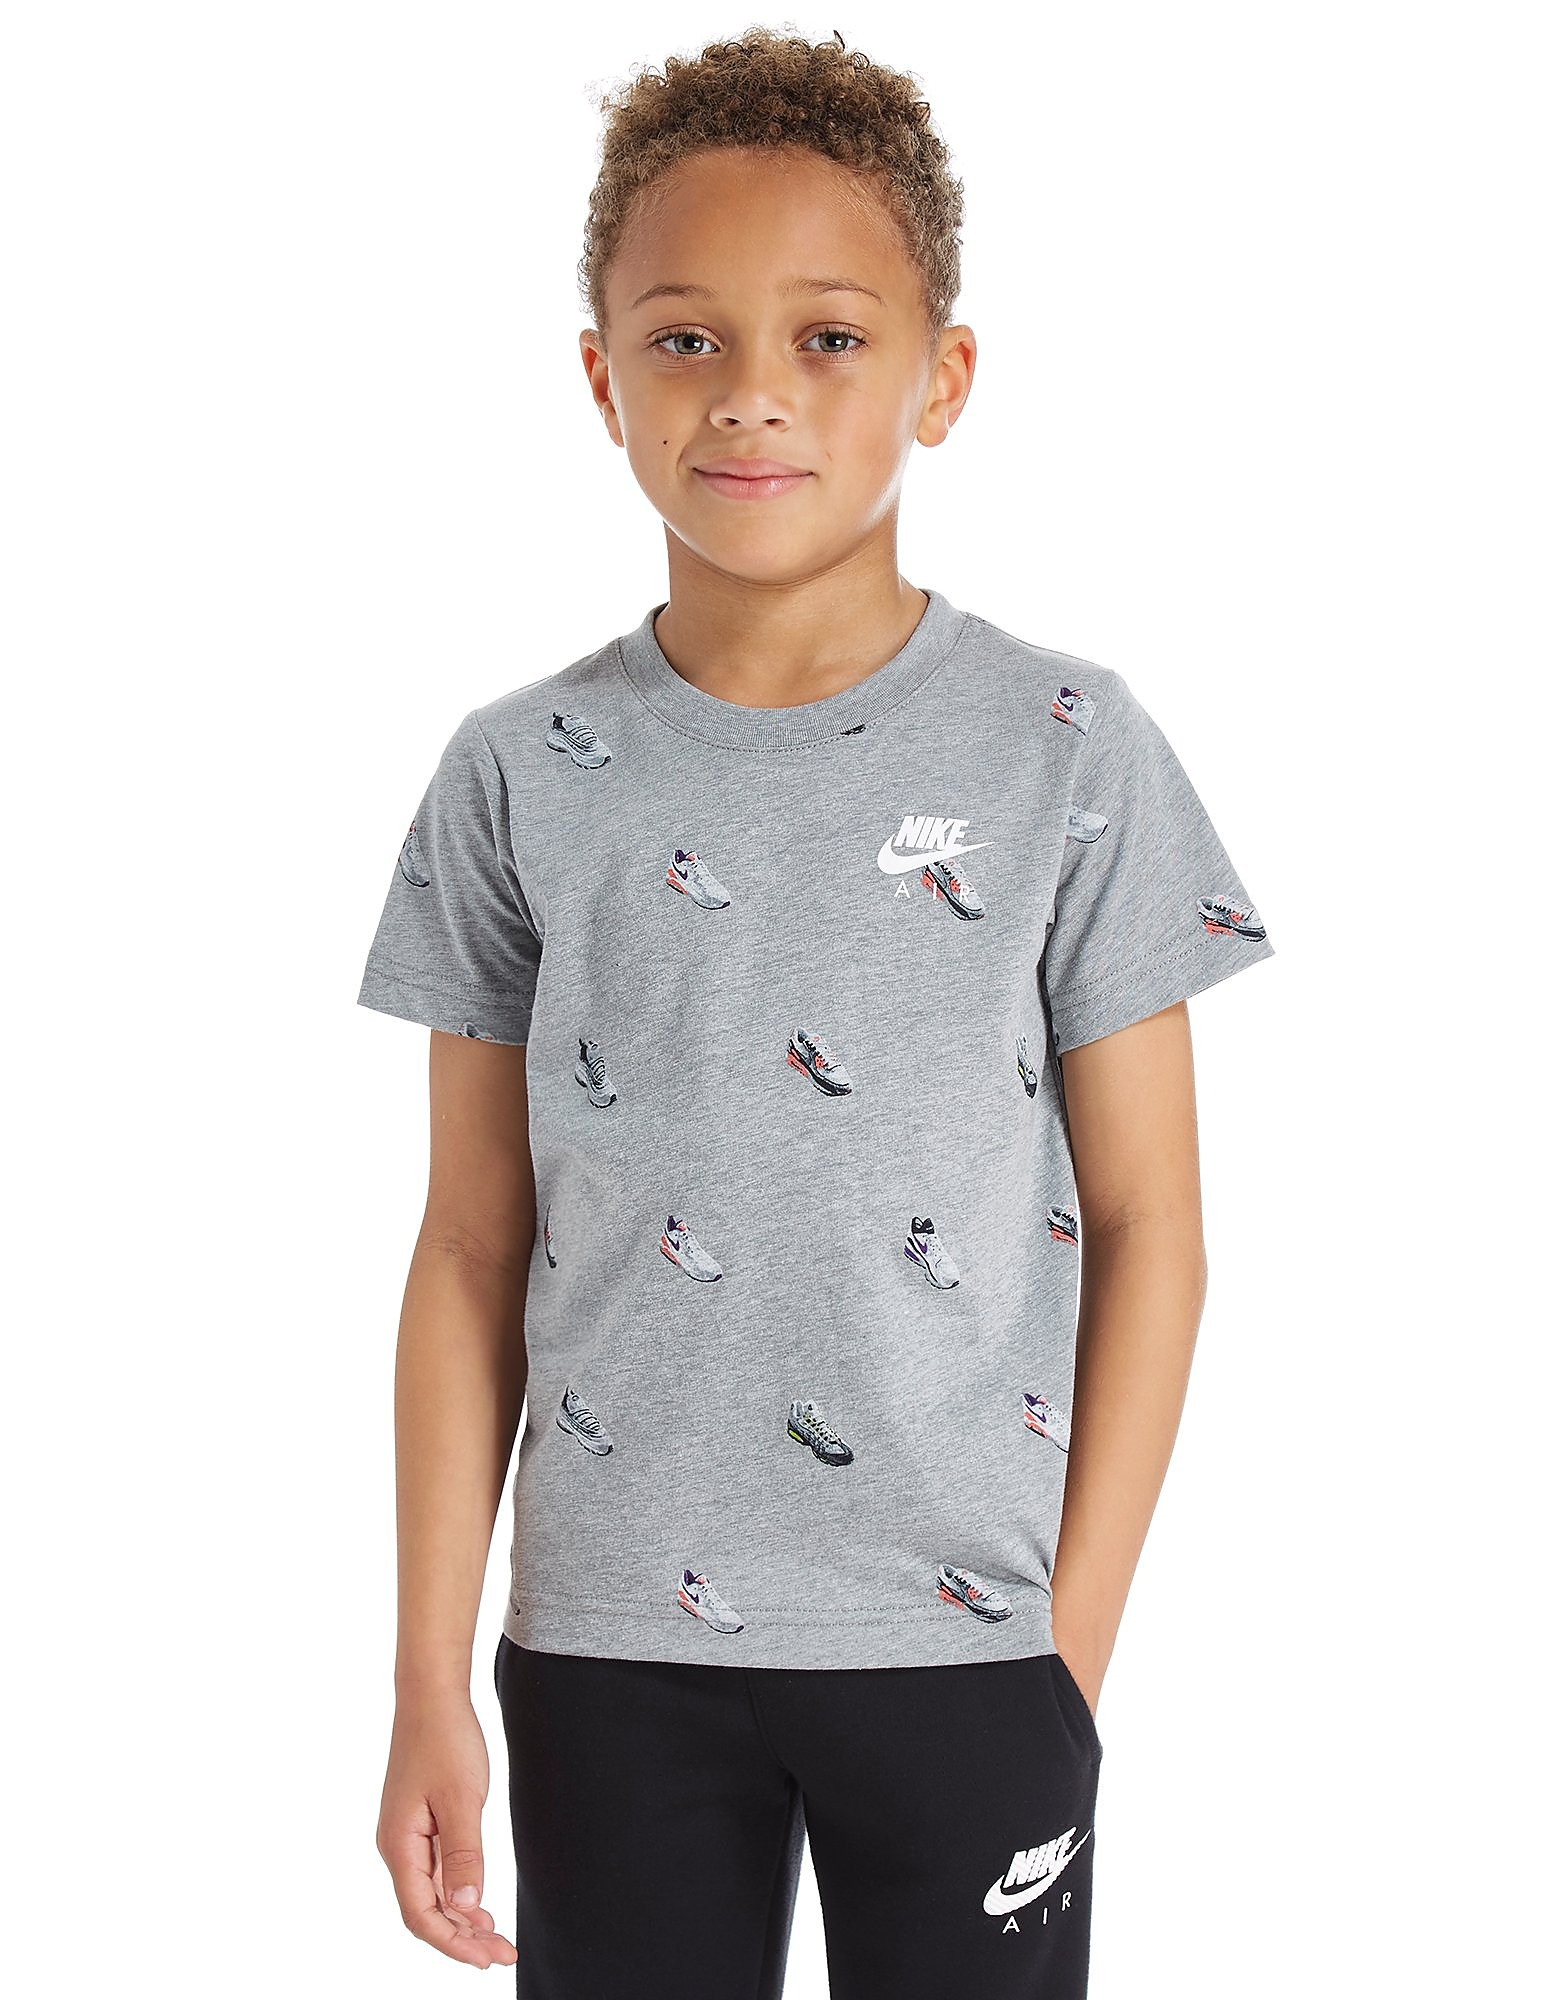 Nike Air Shoe T-Shirt Stampata Bambino